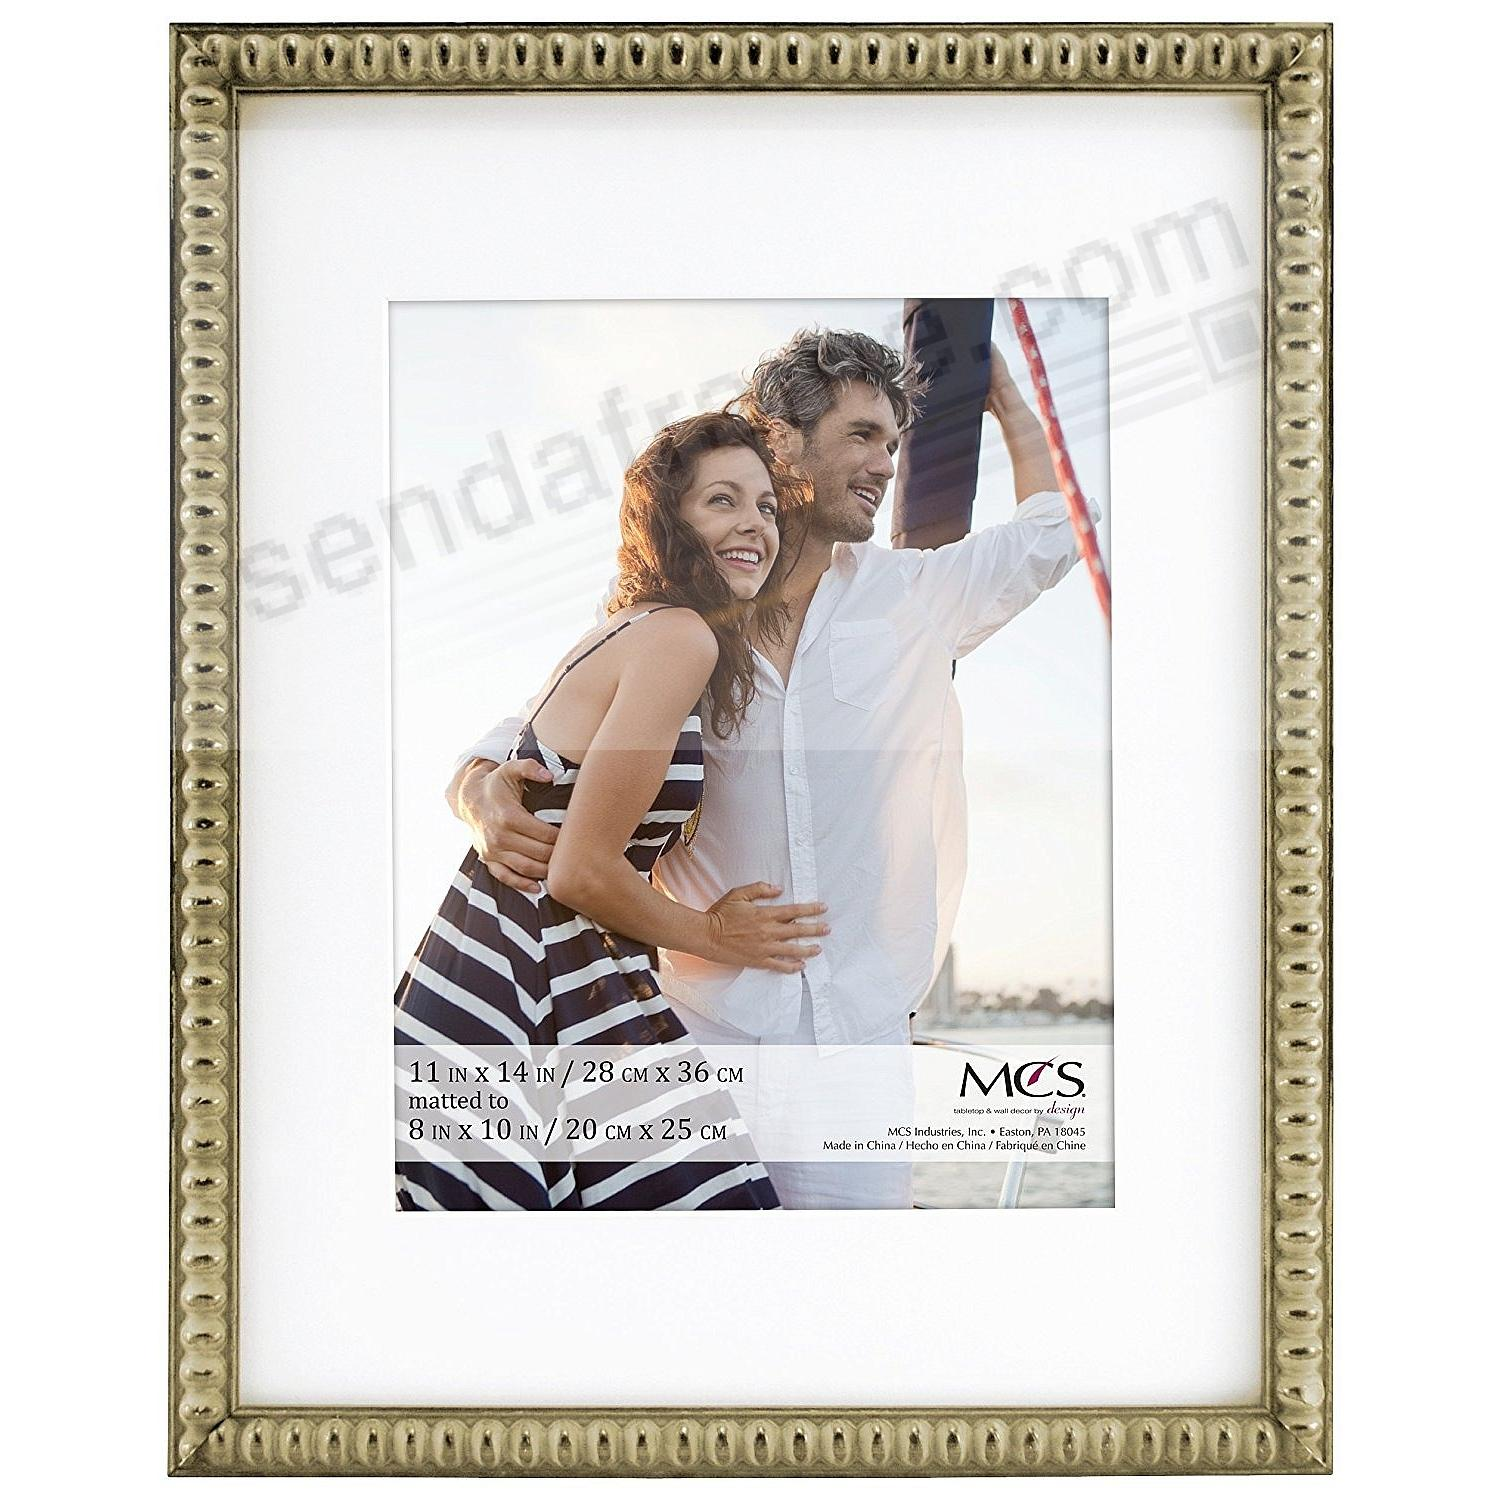 THIN BEAD Wood Champagne frame 11x14/8x10 by MCS®